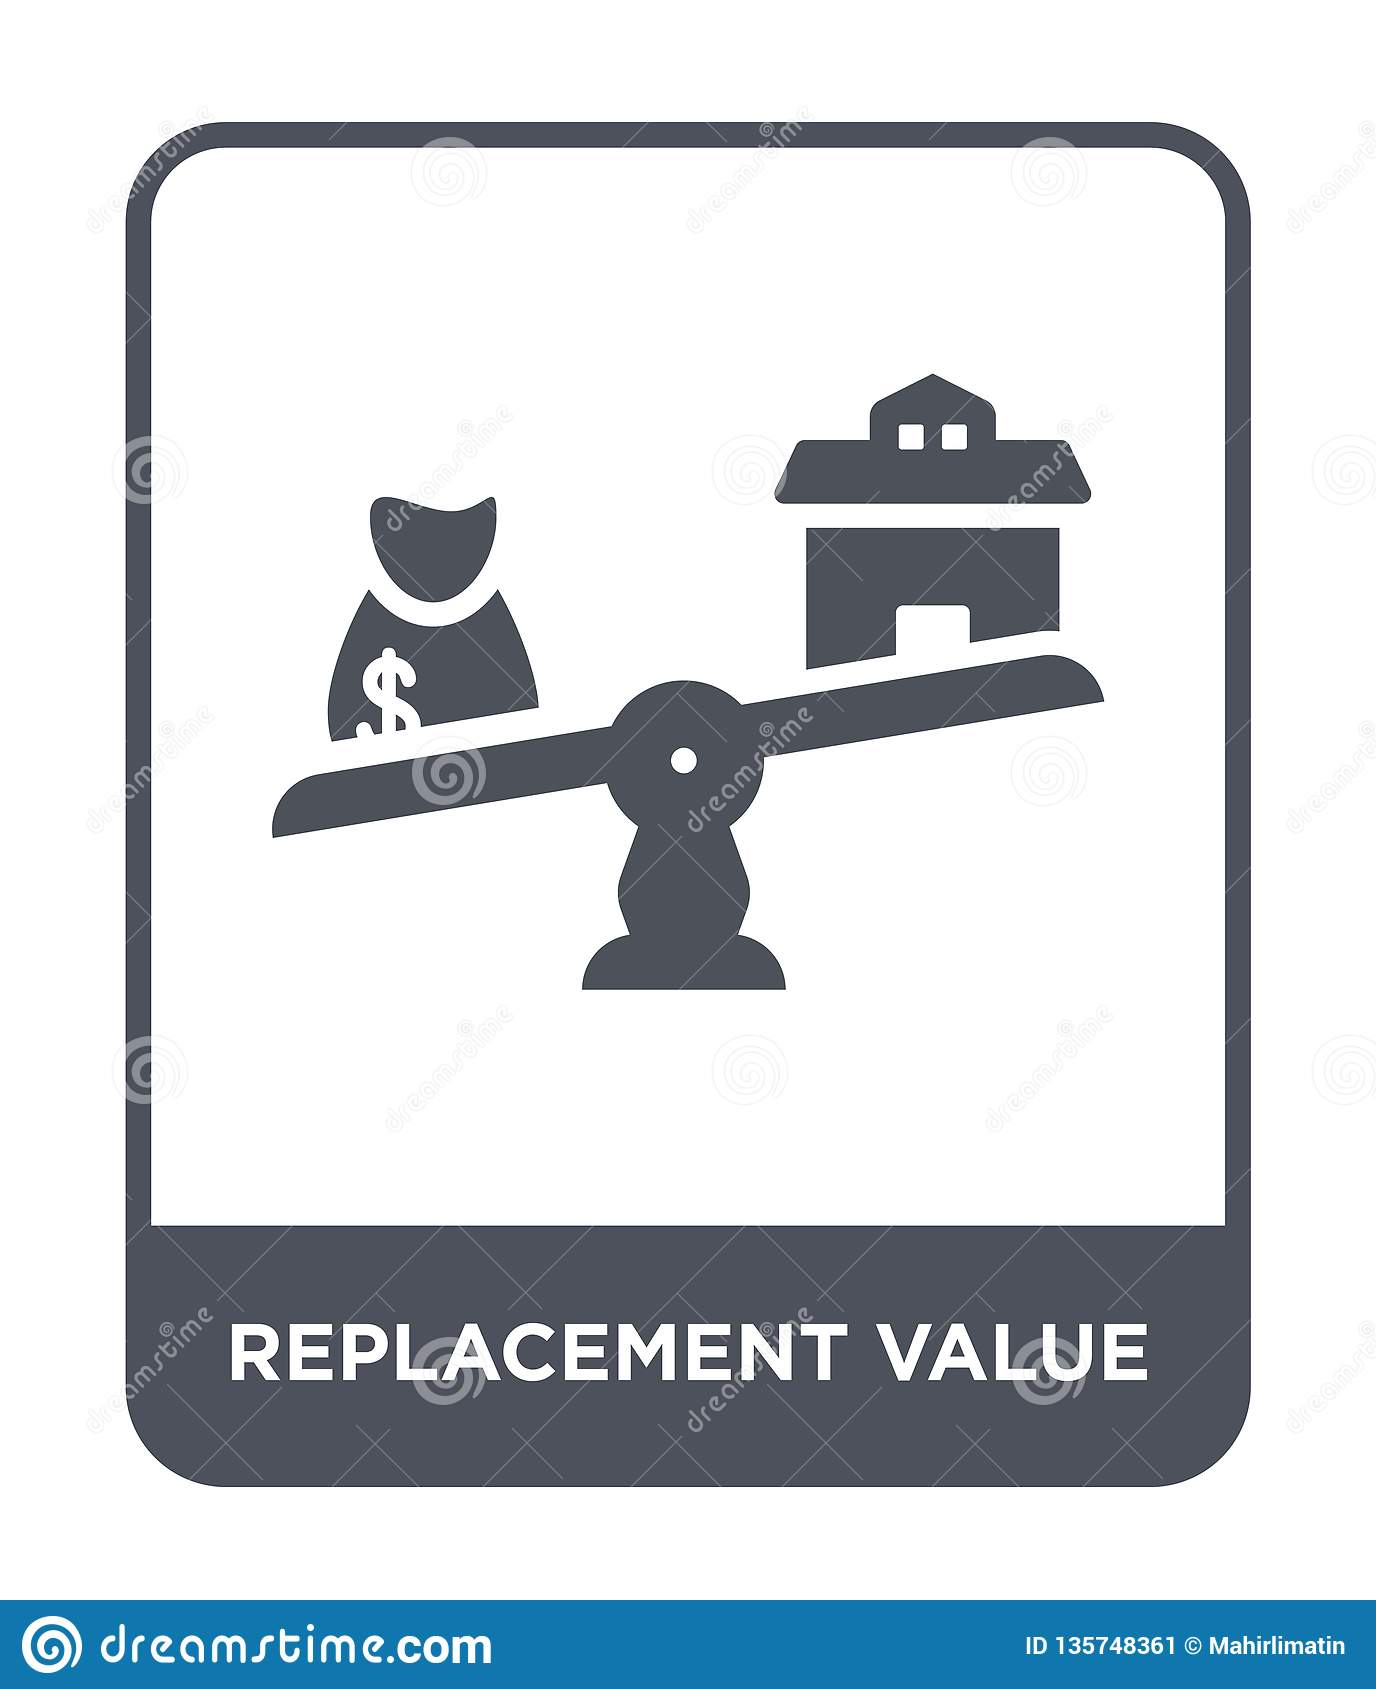 replacement value icon in trendy design style. replacement value icon isolated on white background. replacement value vector icon